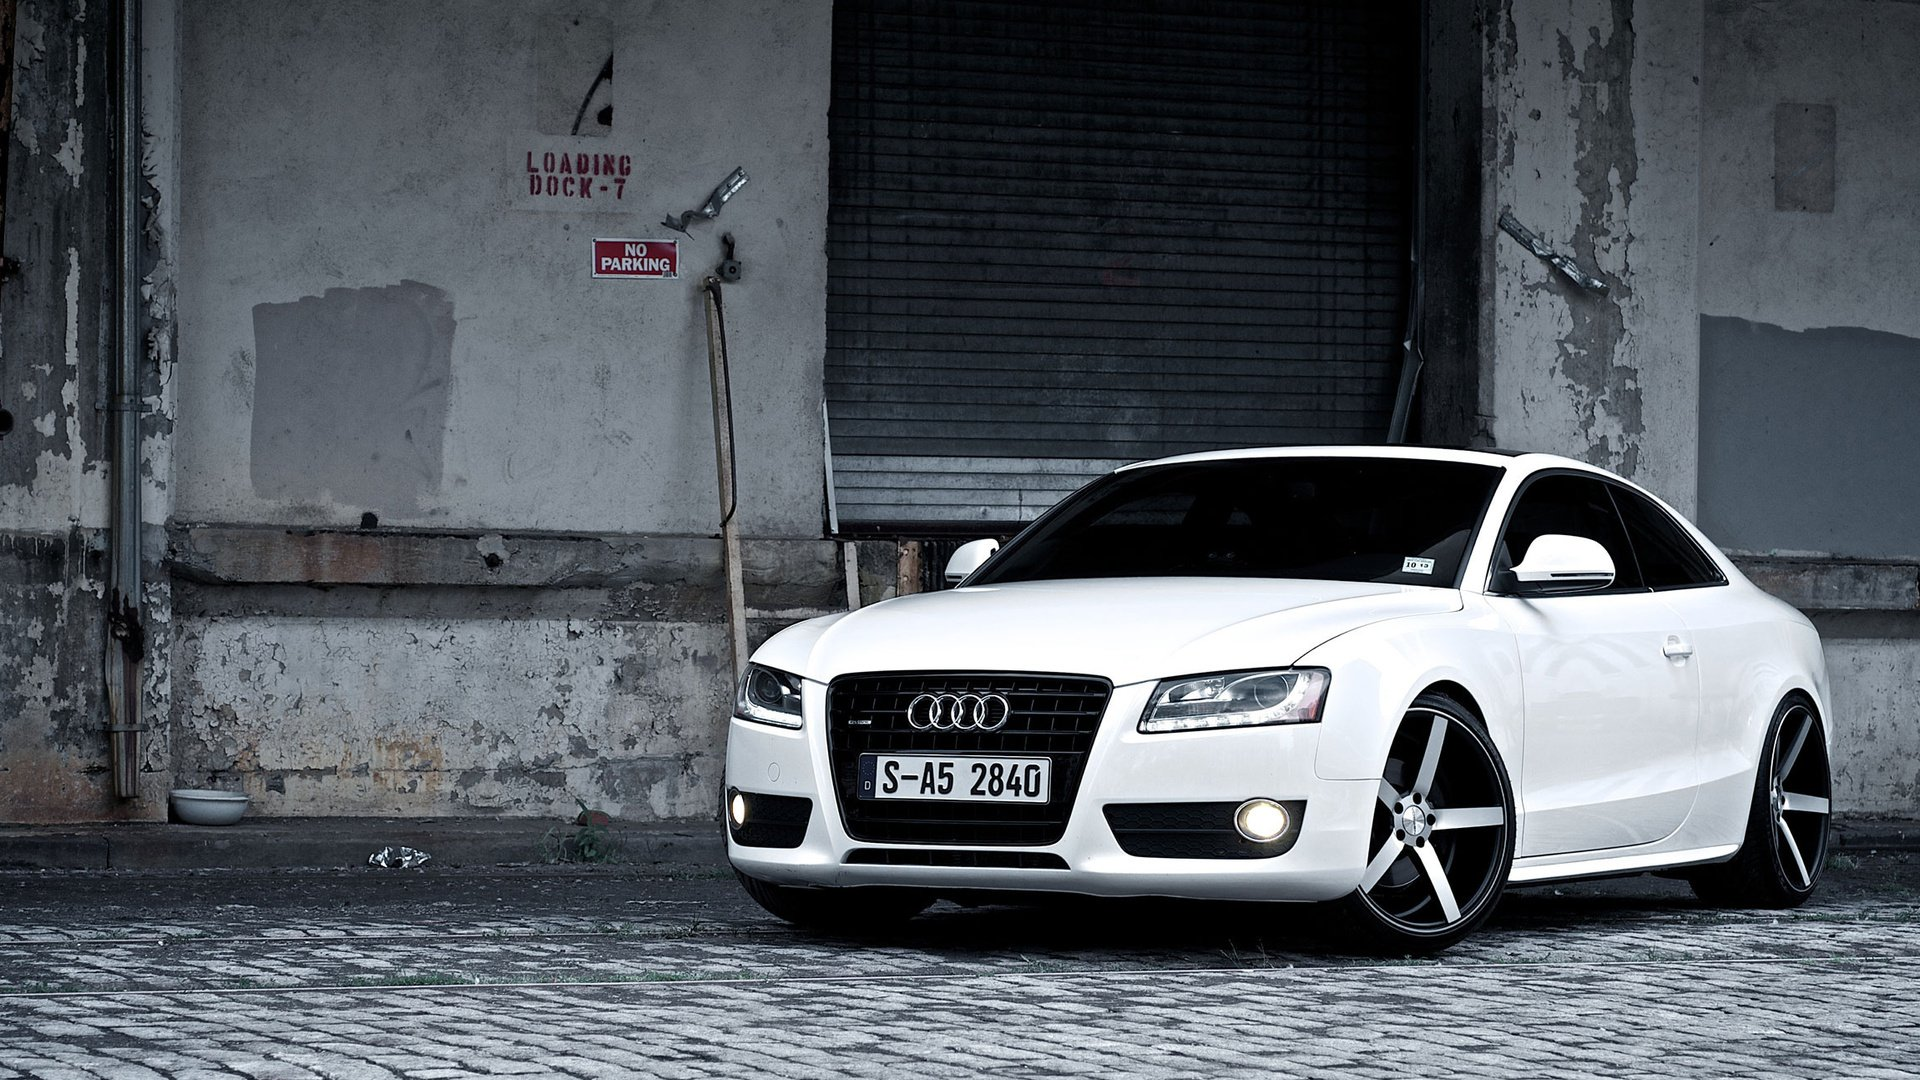 1920x1080 - Audi A5 Wallpapers 21